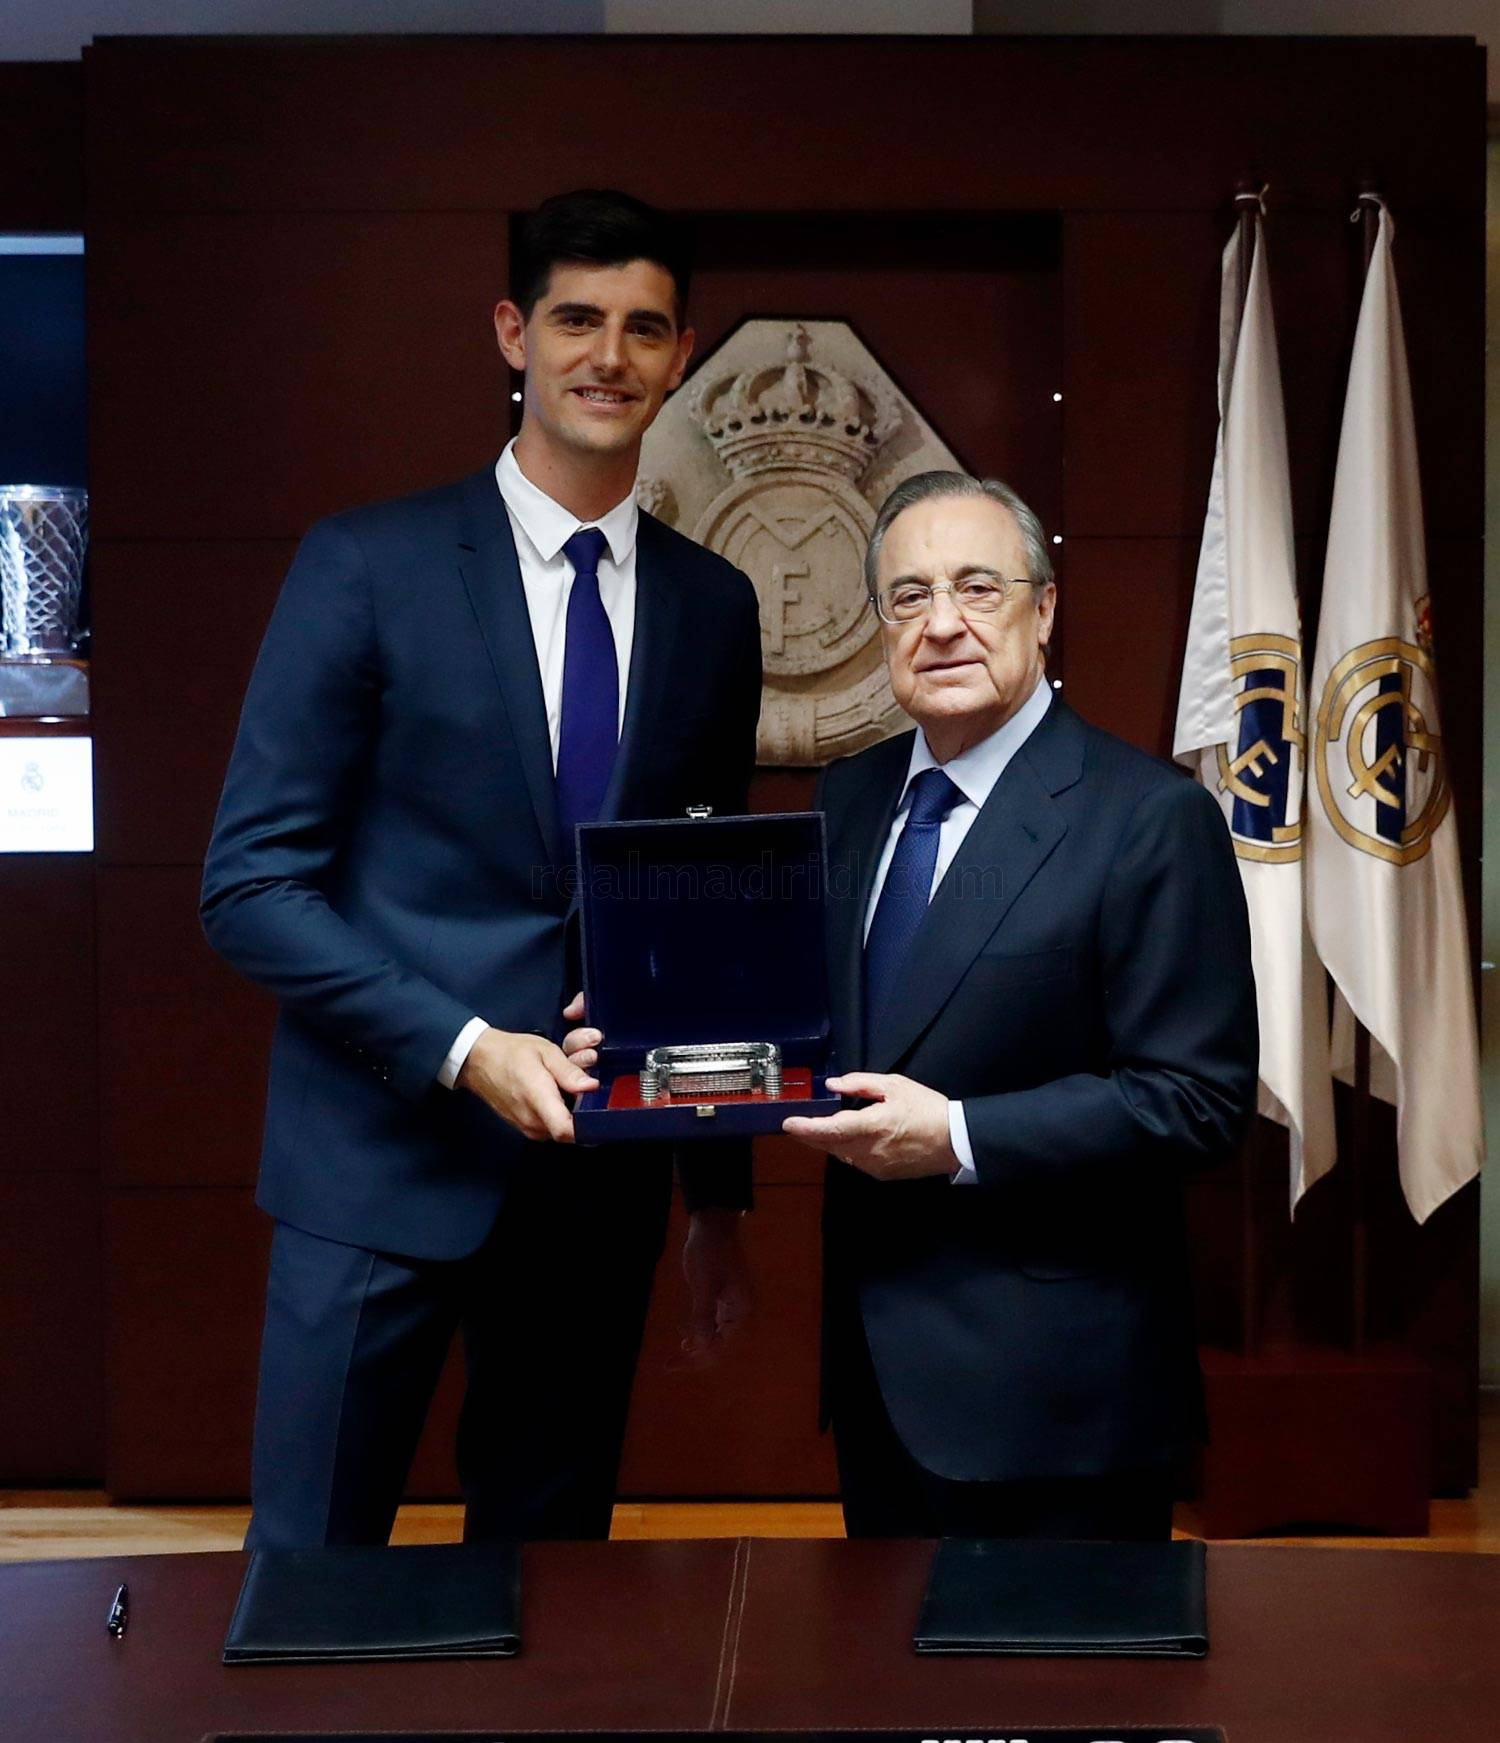 ¿Cuánto mide Thibaut Courtois? - Altura - Real height _he23545